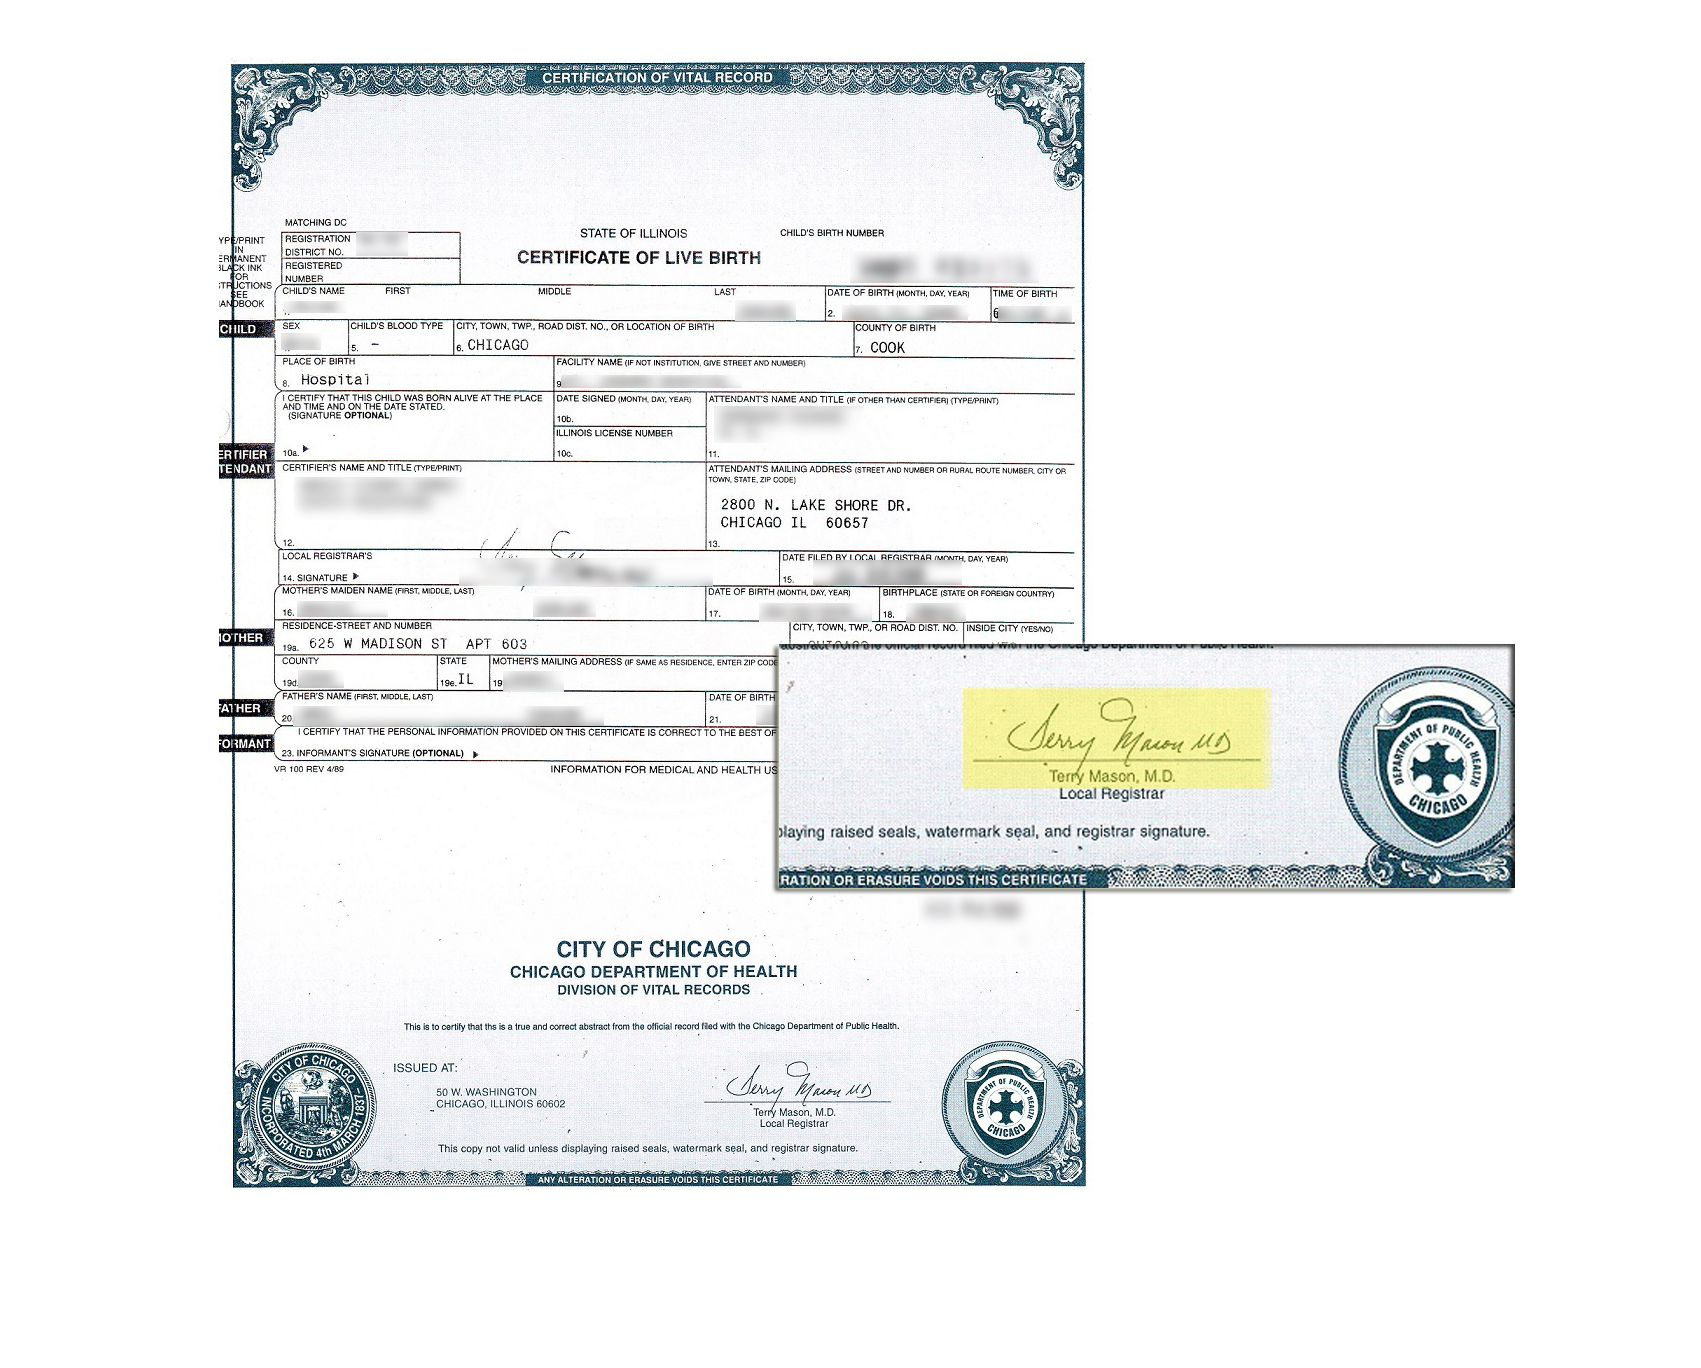 Tennessee Counties Birth Certificate Vital Records Oukasfo